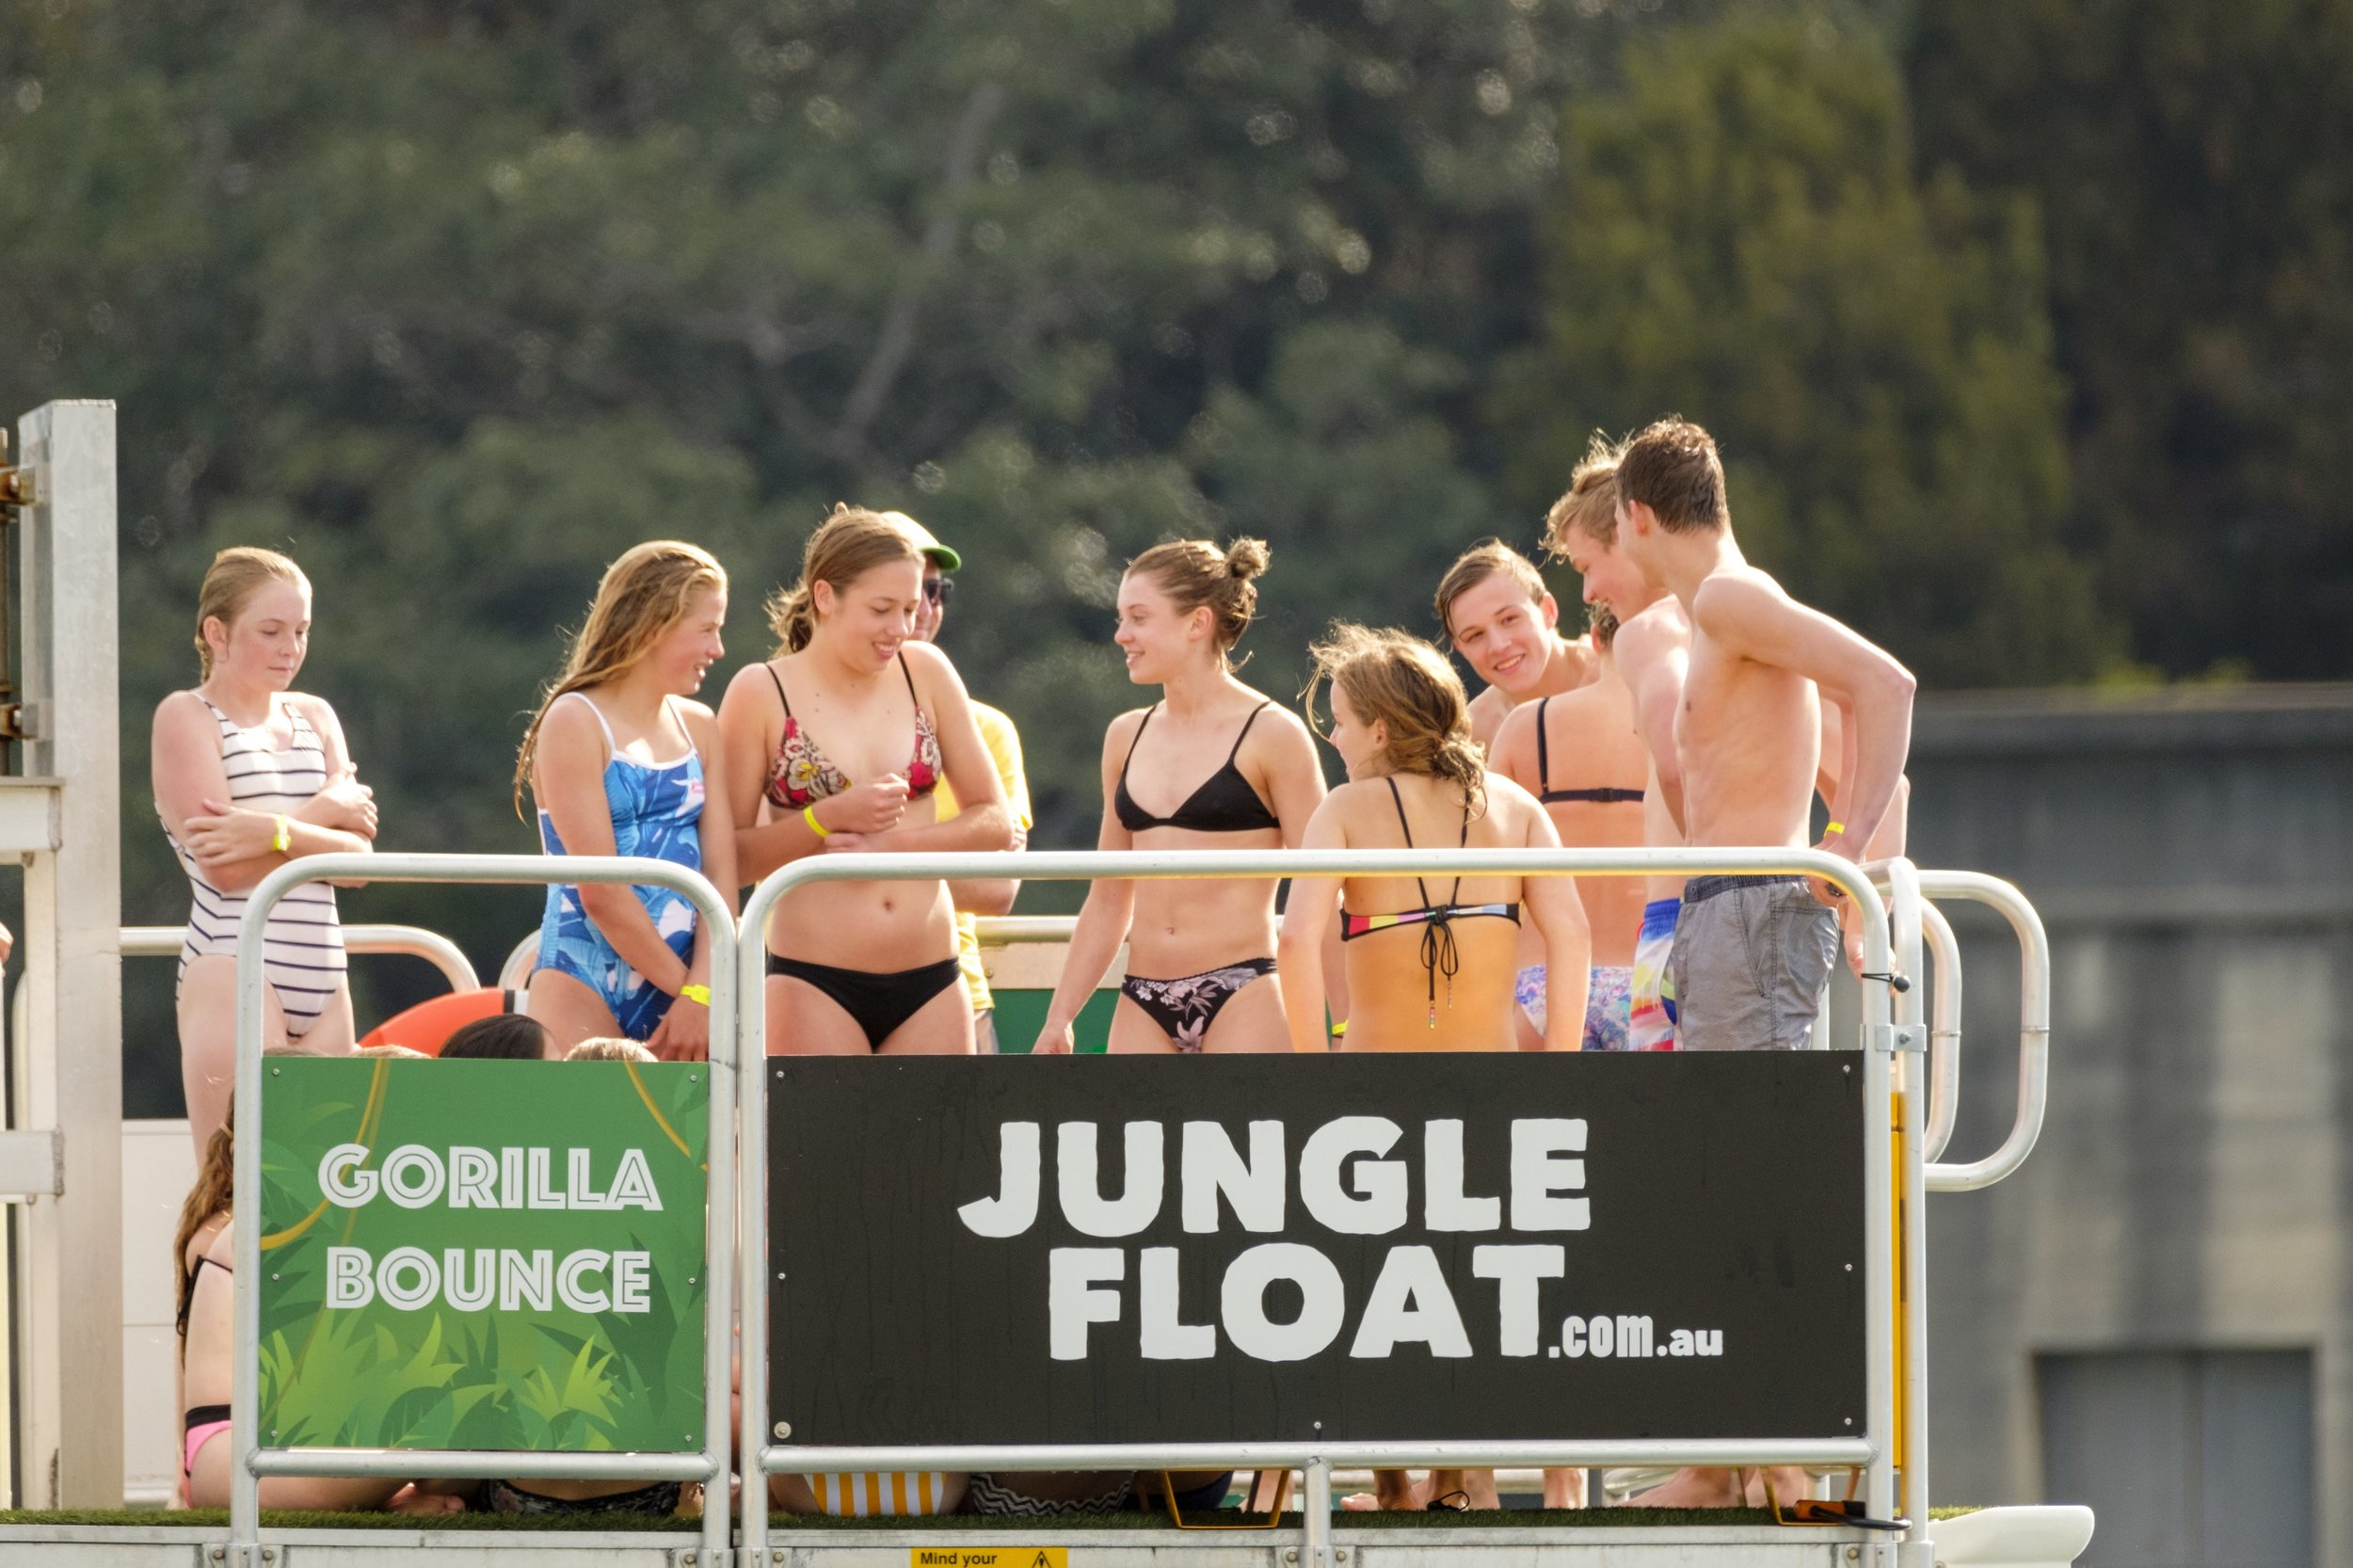 Ages & Groups - Suitable for 8 years and older. Children under 8 require an accompanying adult who is required to purchase a ticket - due to our capacity limits.Jungle Float is great for birthday parties. You get to relax on the beach while the kids go wild. Book a group into one of 1 hour long sessions and share the boat with other groups or select Exclusive Hire for a more intimate experienceWe suggest you book an Exclusive Hire for adult parties.